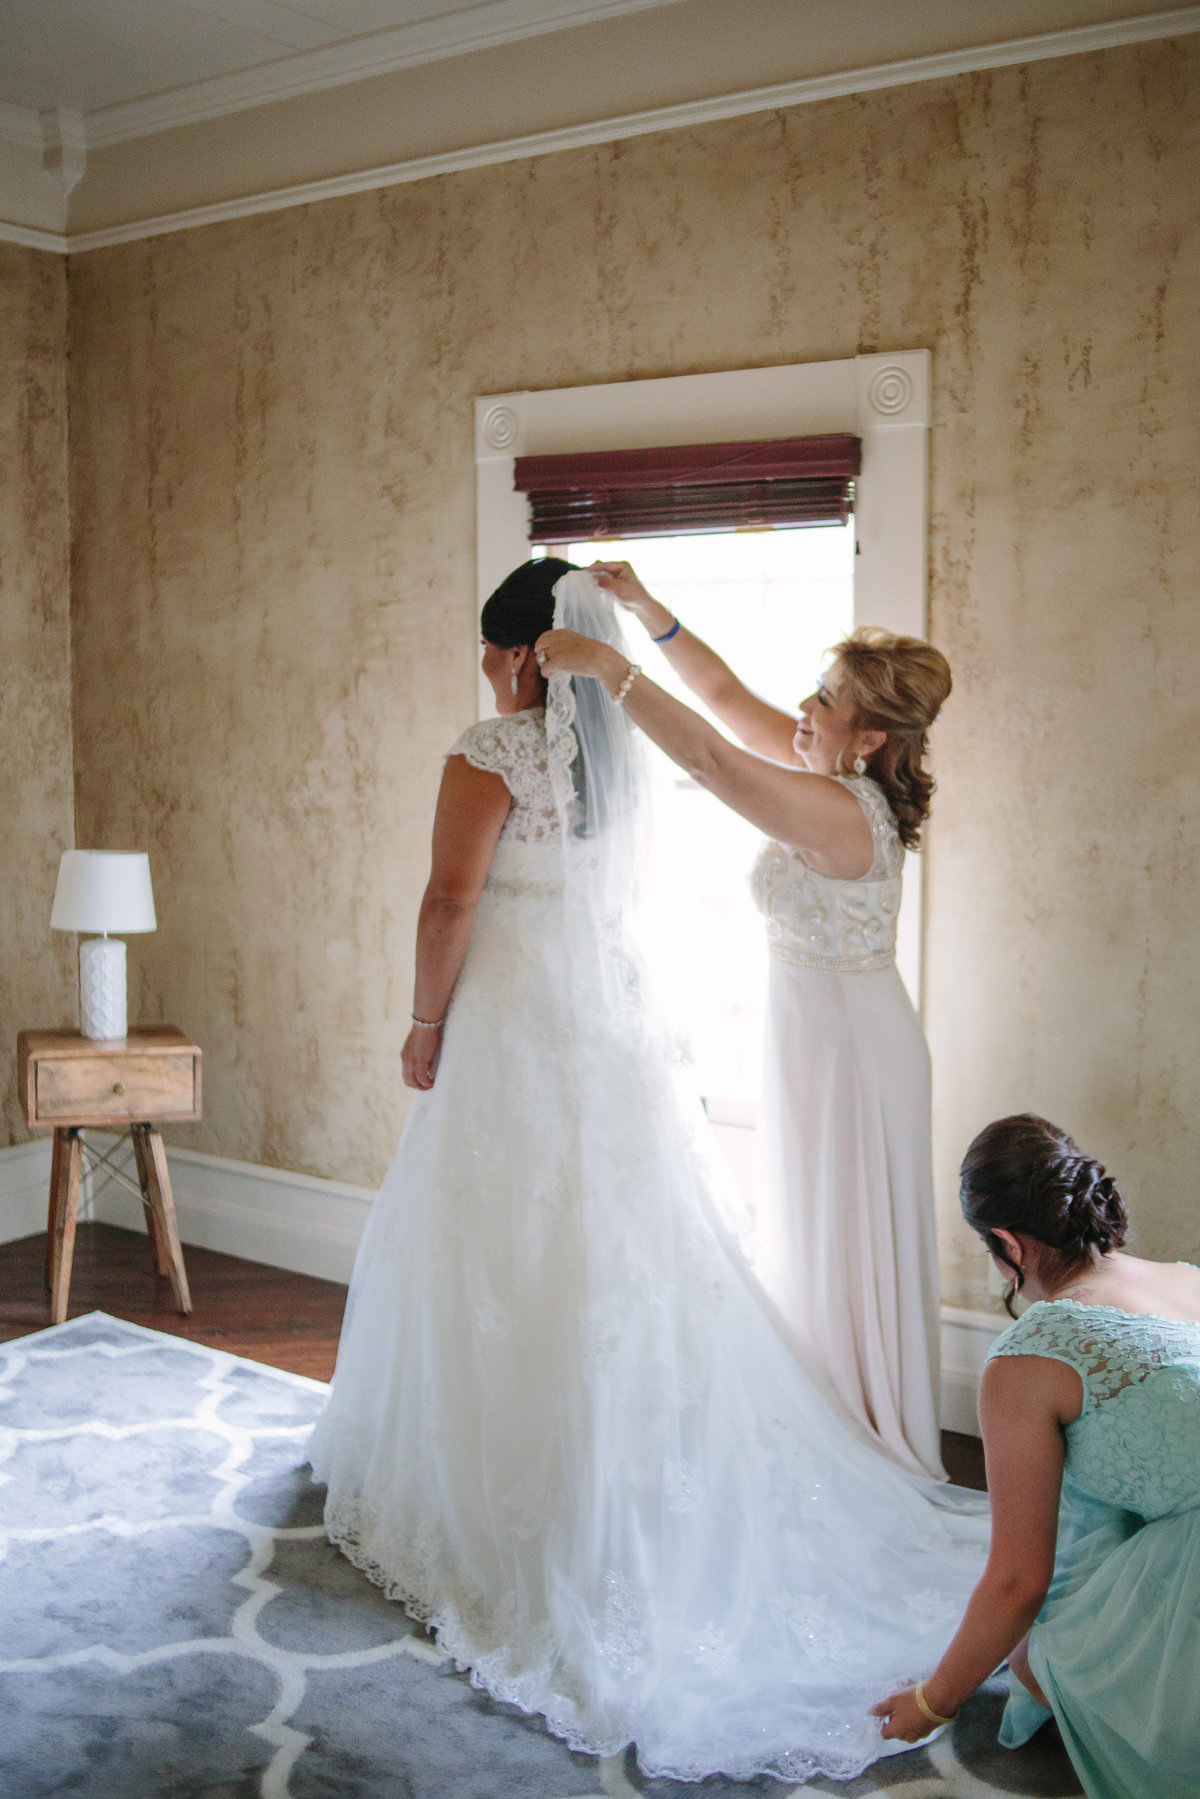 Mother of bride puts veil on her daughter just before getting ready for Texas Hill Country wedding ceremony.